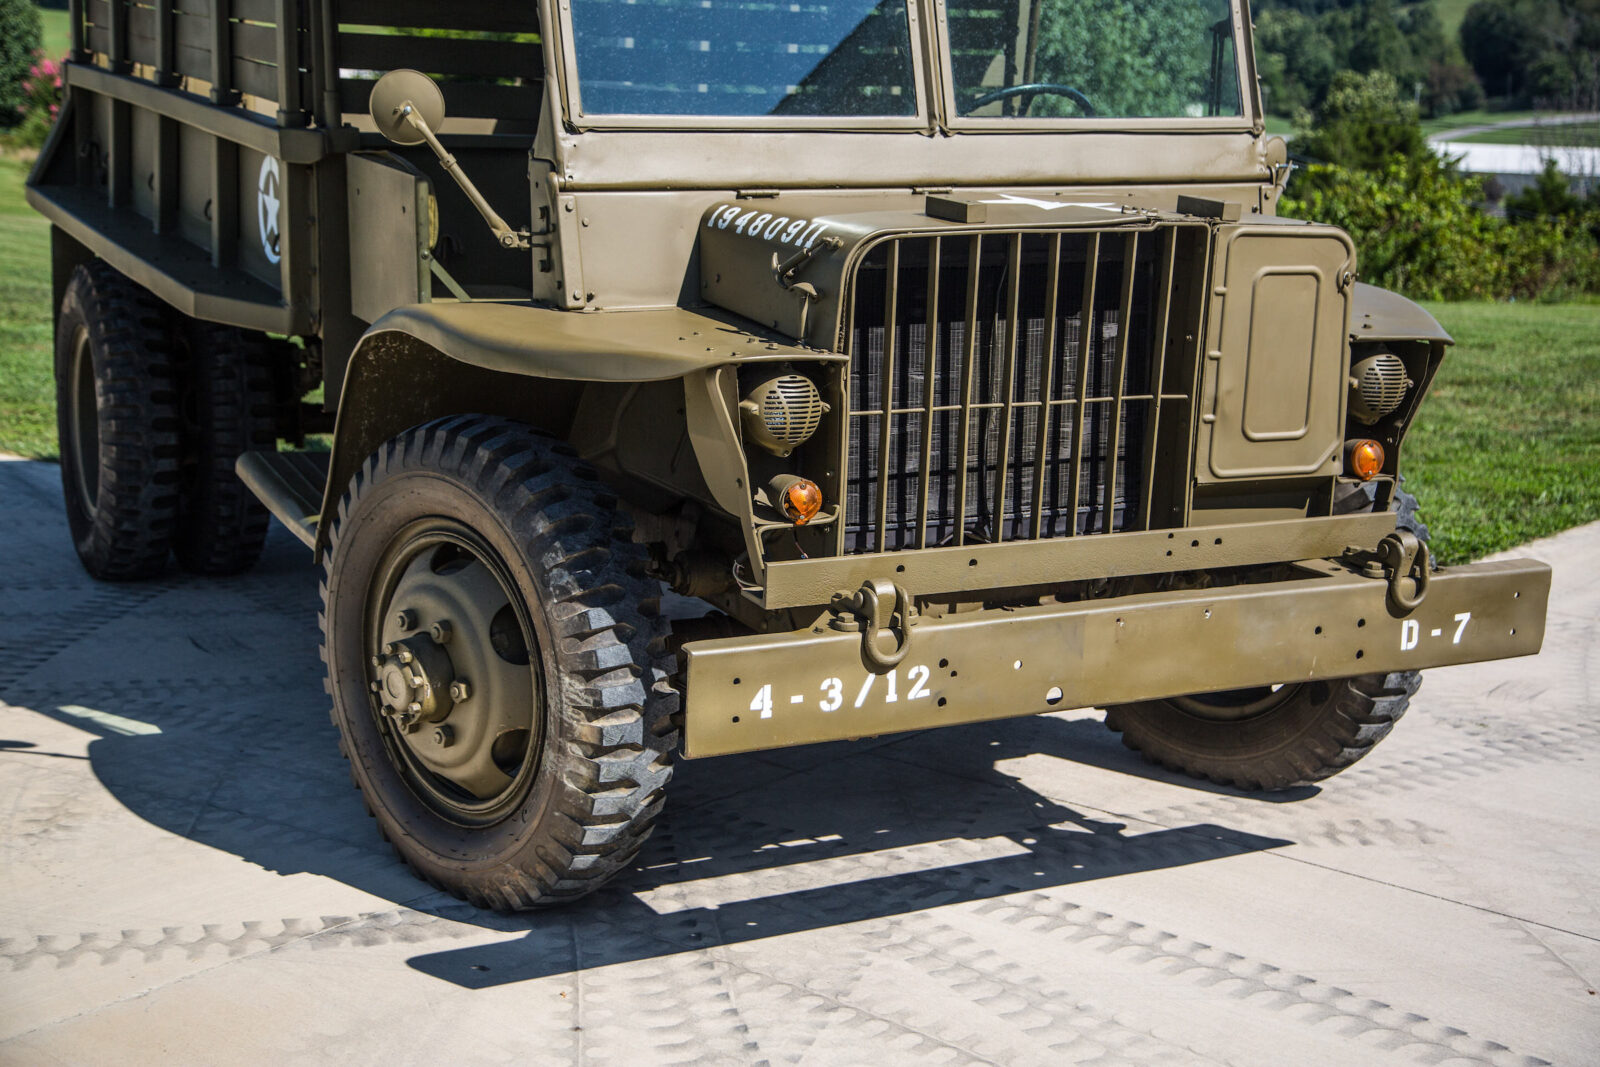 The Rare Ford Burma Jeep A Ww2 Era 4x4 Truck Capable Of Almost Anything